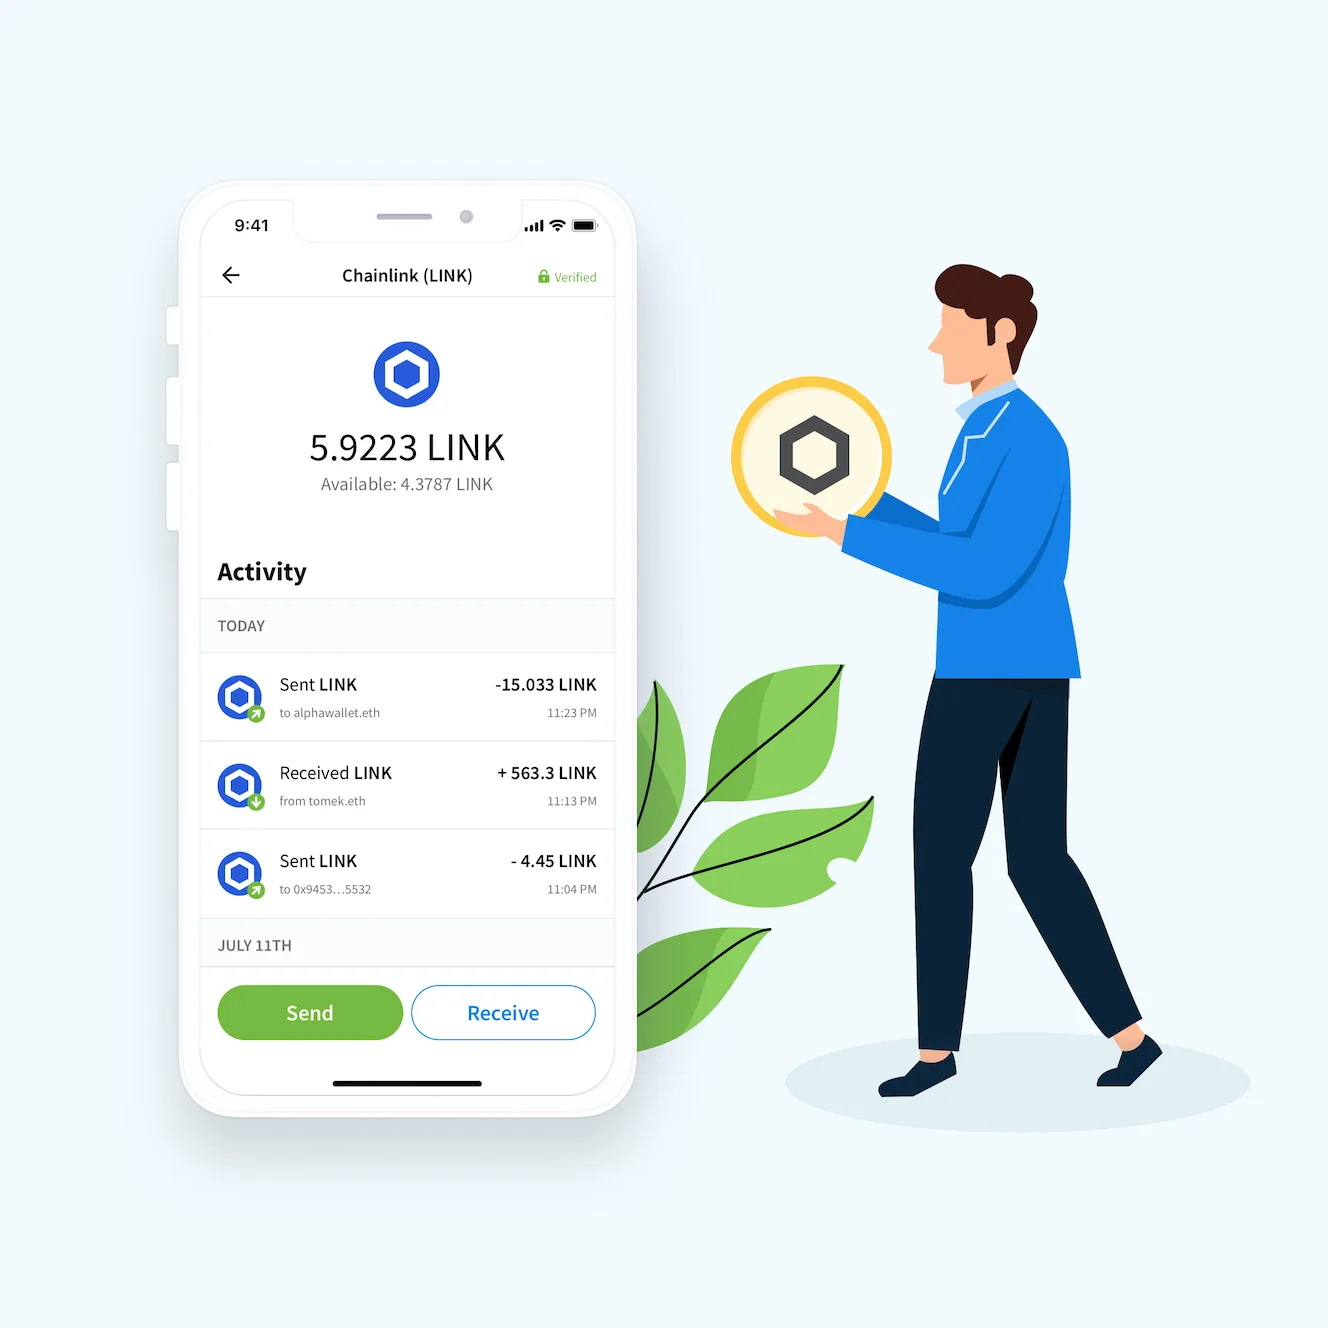 Where can I download Chainlink Wallets